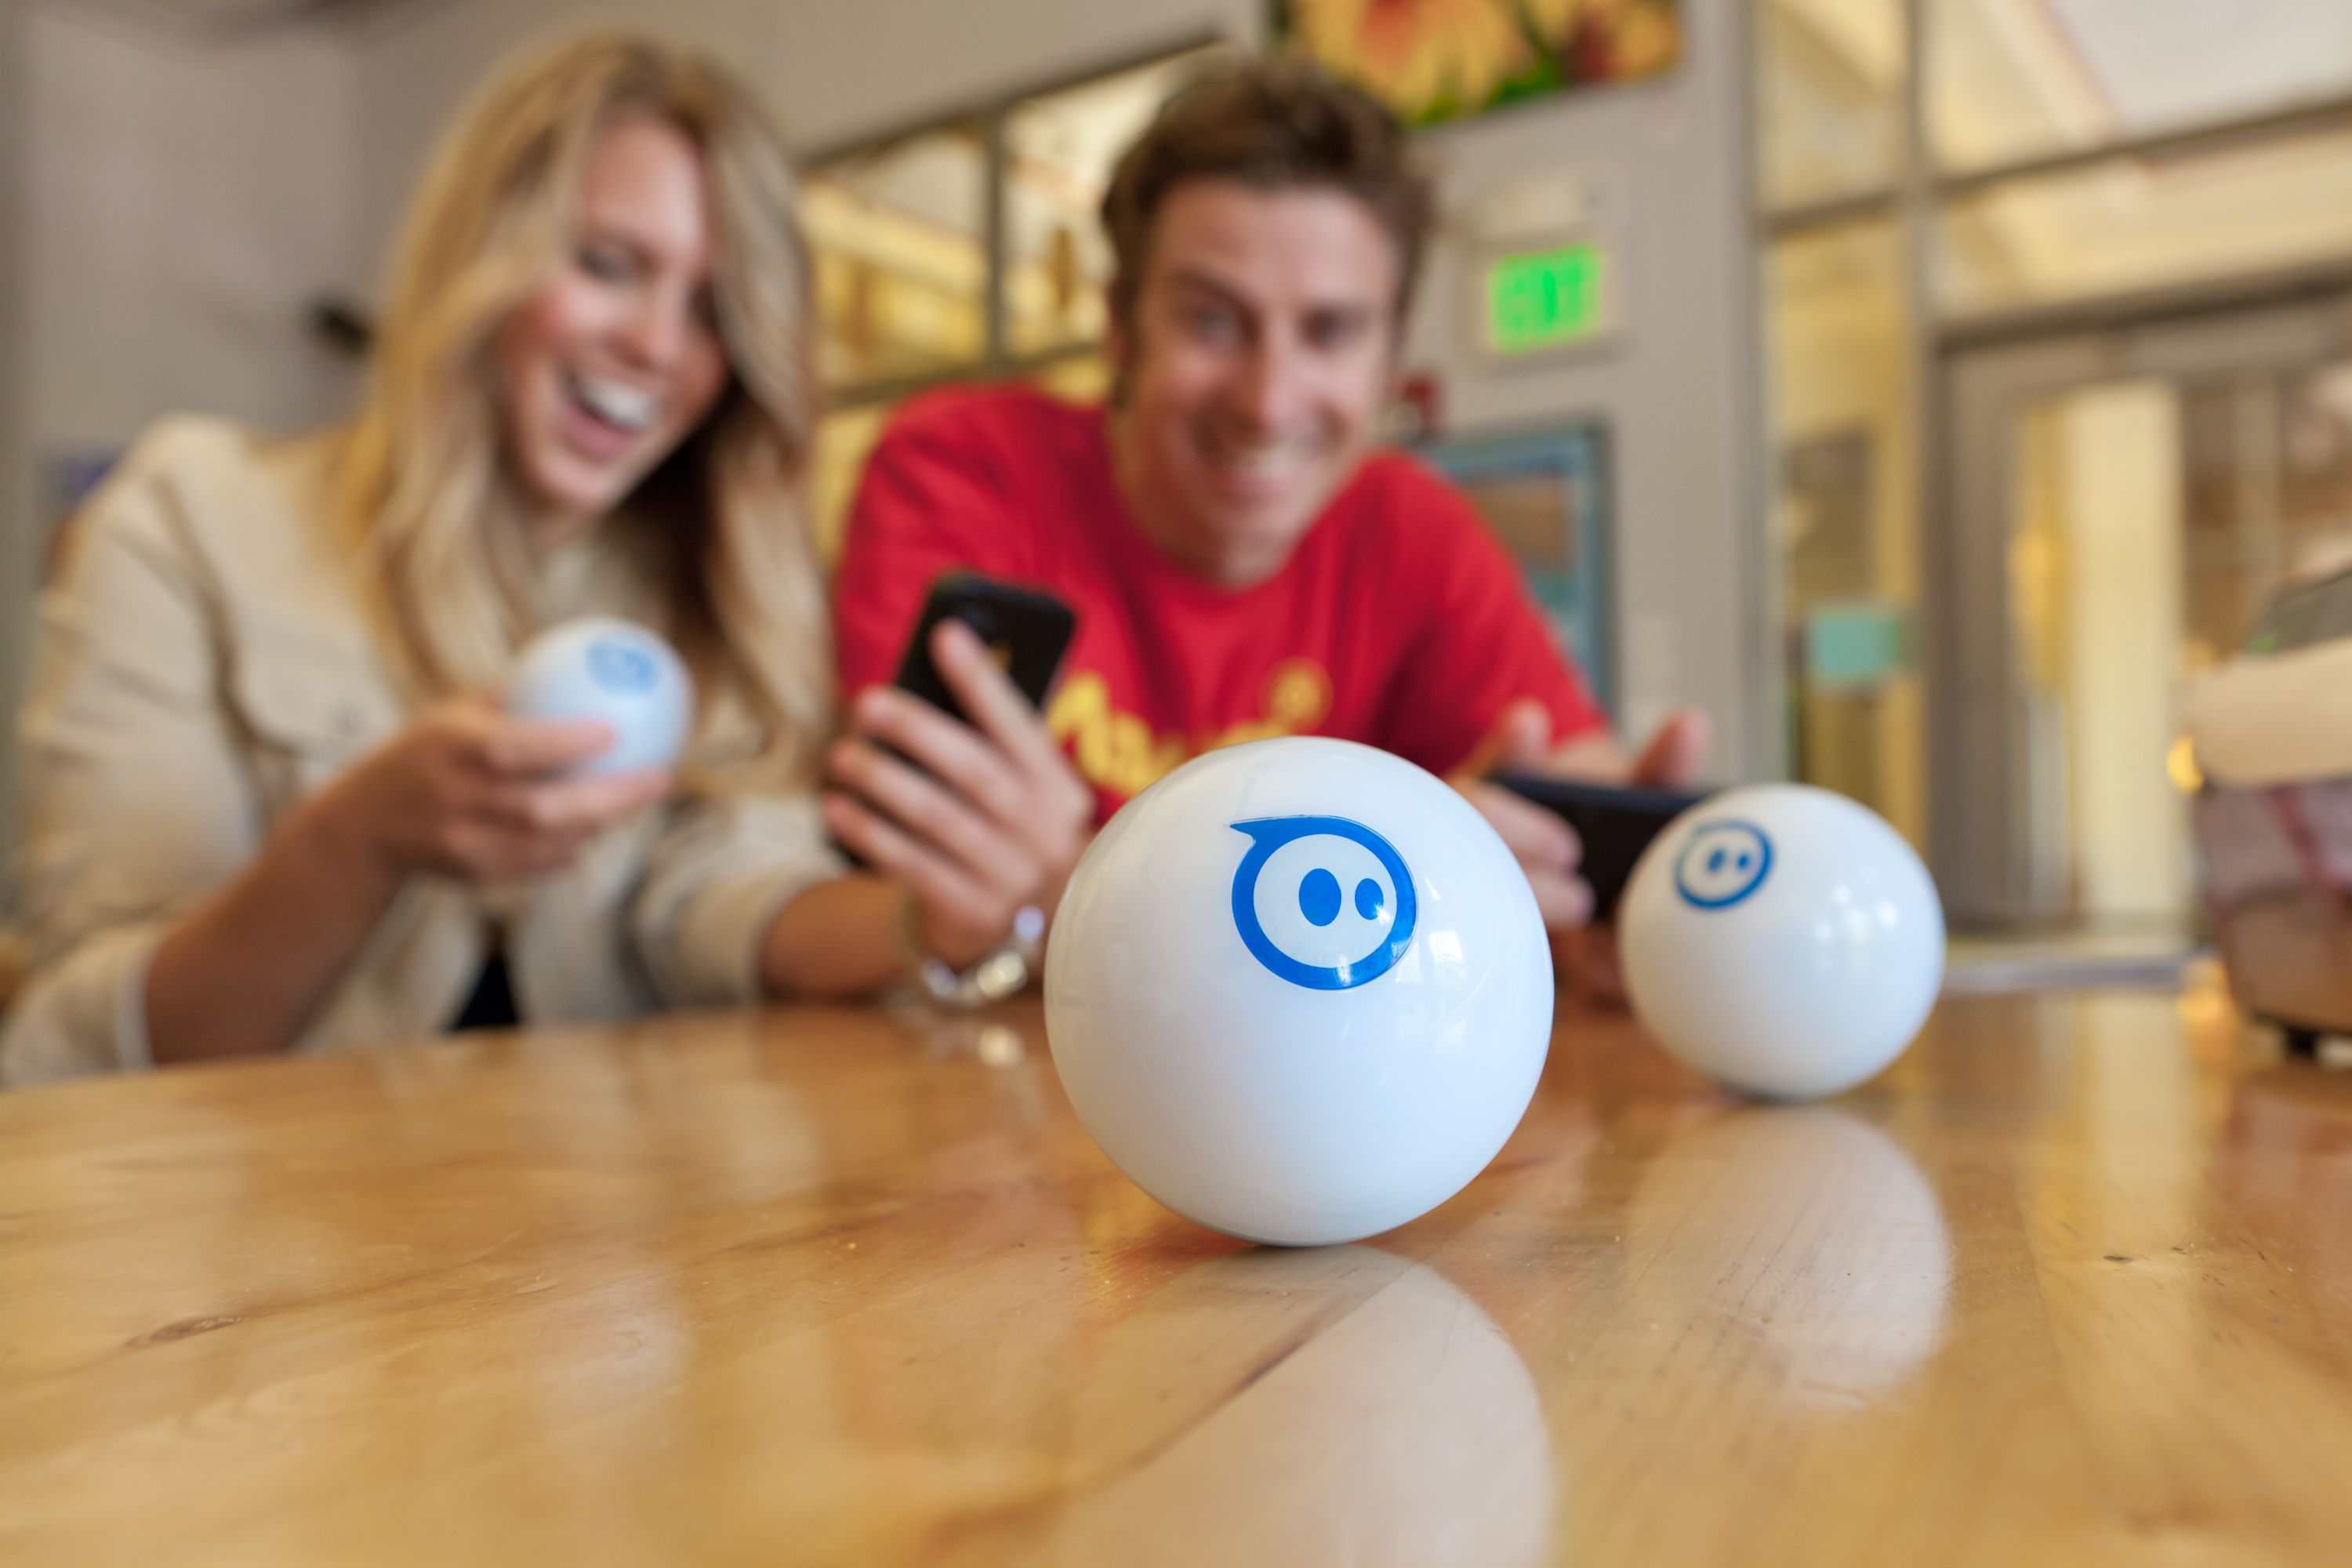 Sphero A robot ball controlled by your smartphone or